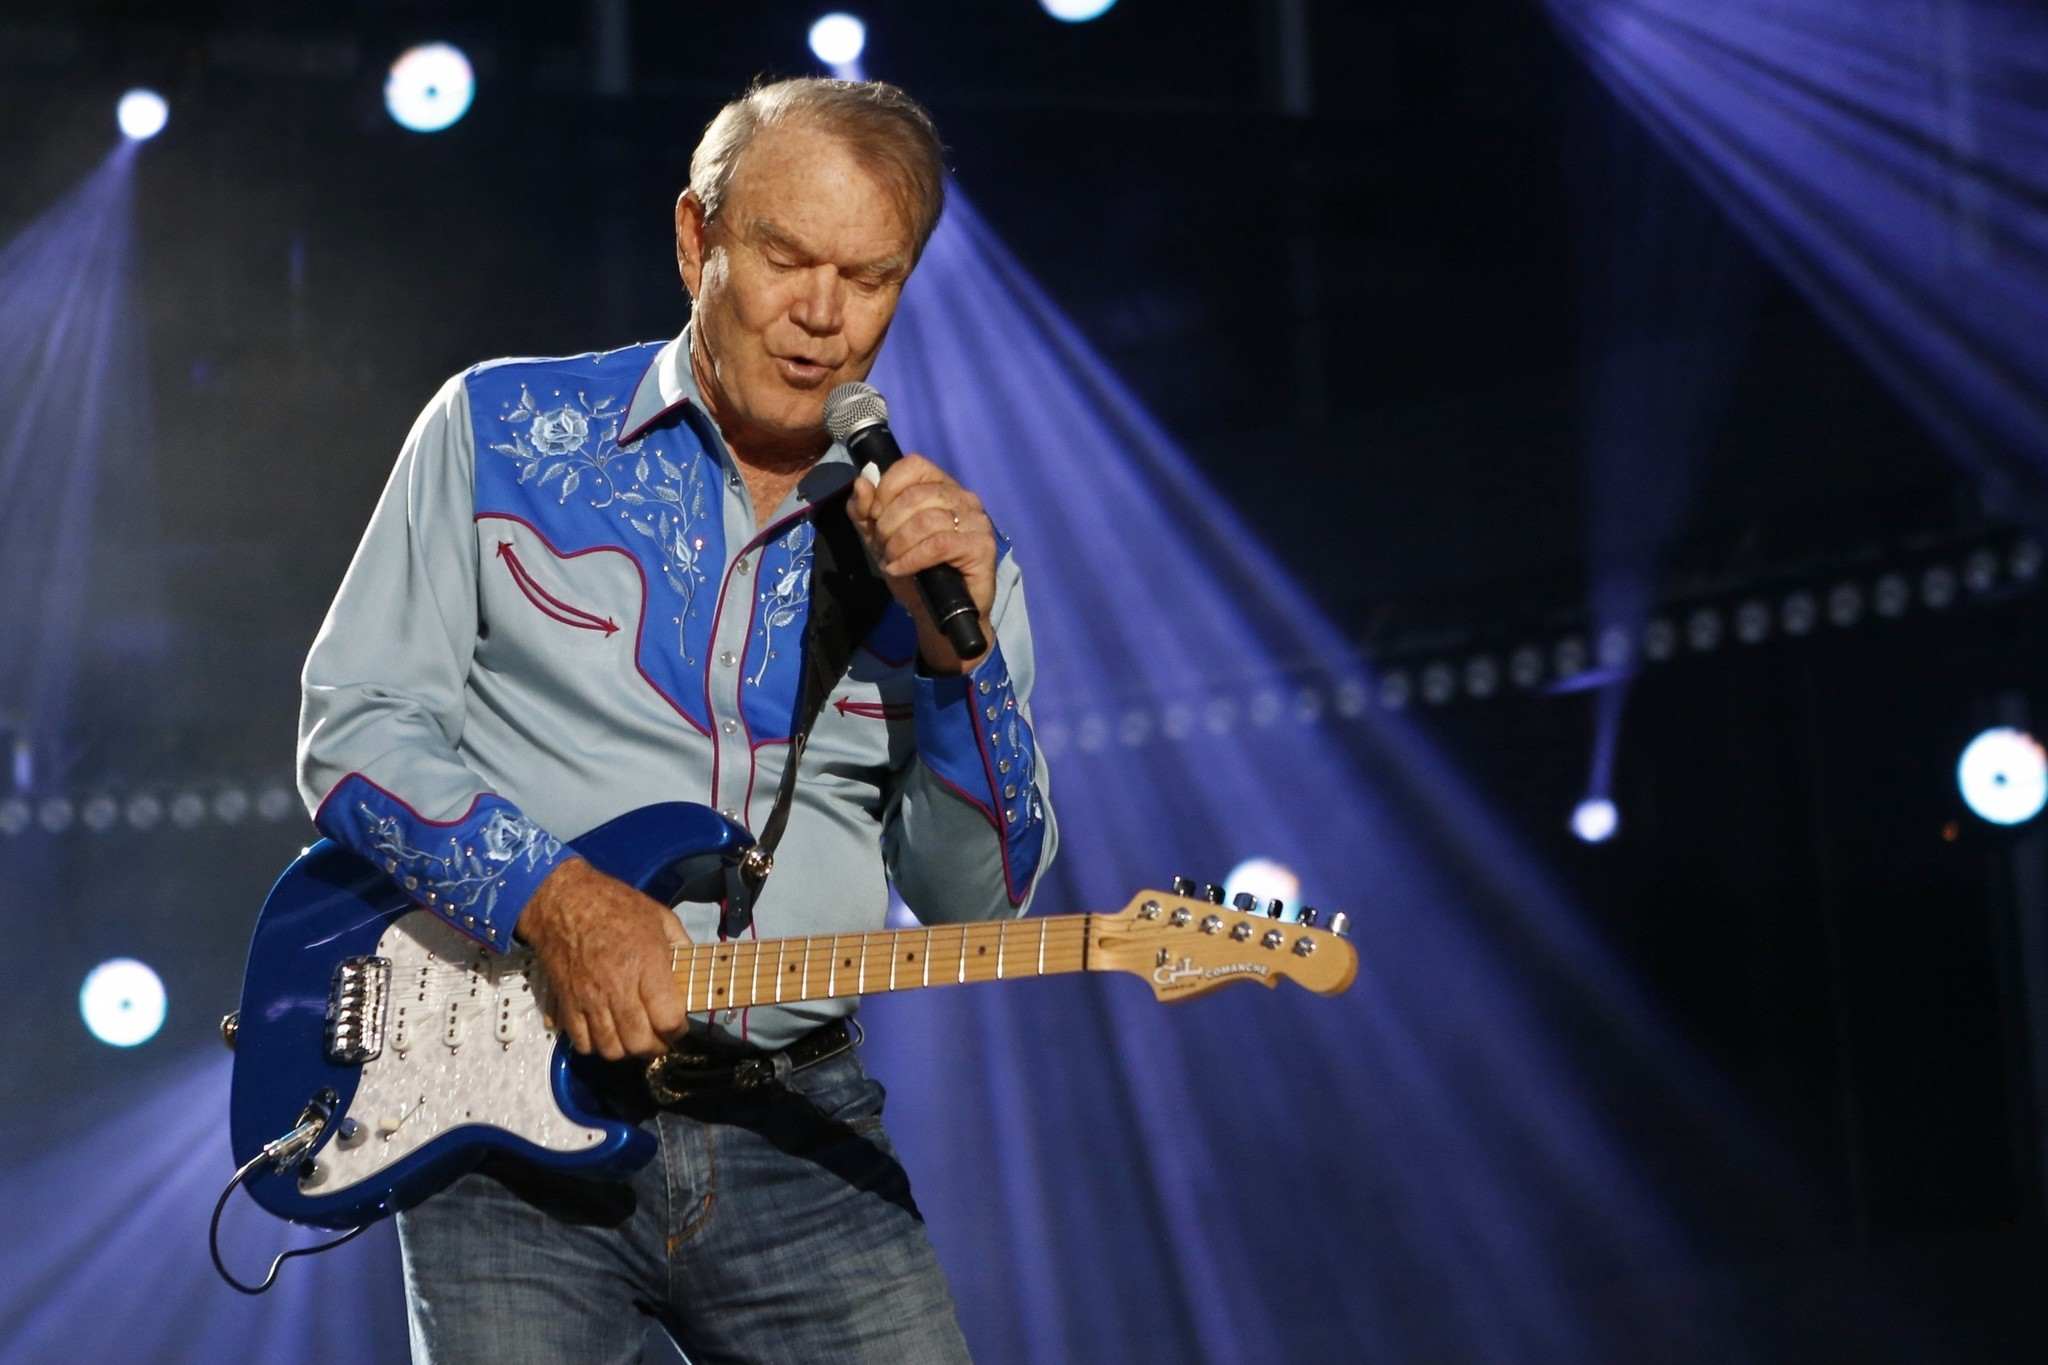 glen campbell can no longer play guitar according to wife chicago tribune. Black Bedroom Furniture Sets. Home Design Ideas